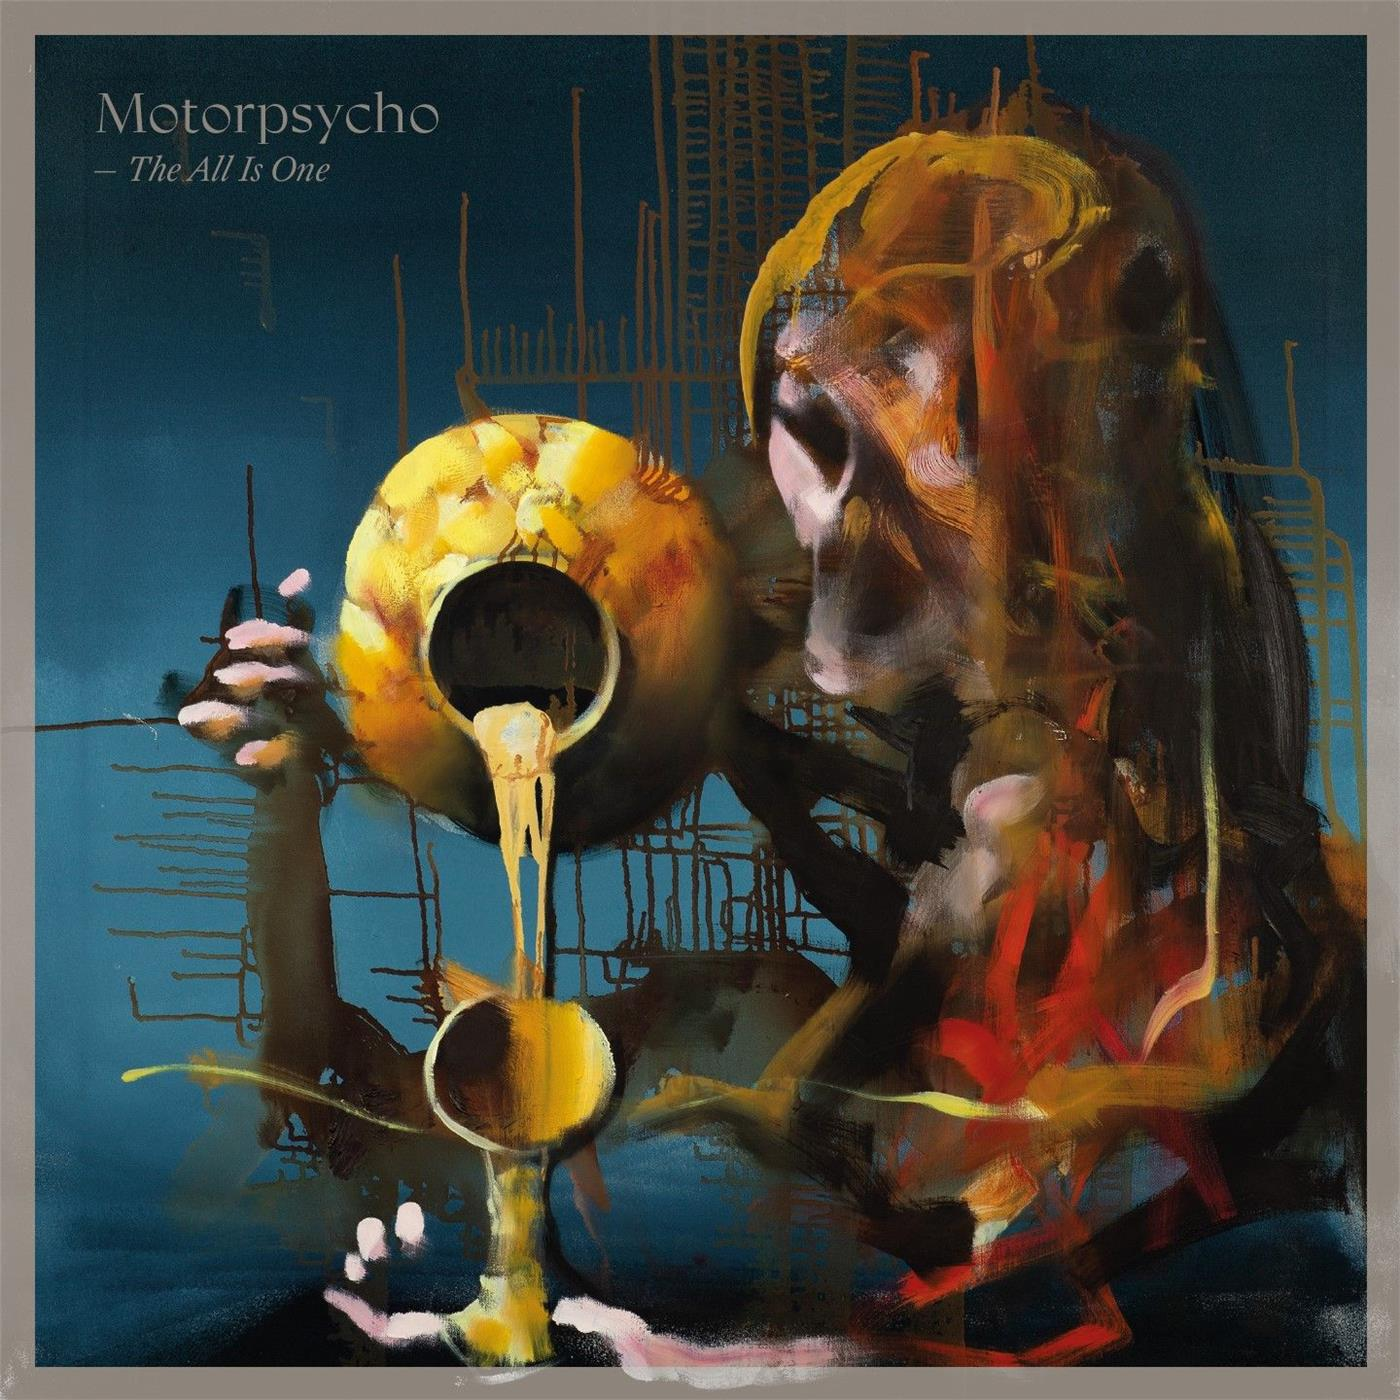 MPLP304 Rune Grammofon  Motorpsycho The All Is One (2LP)